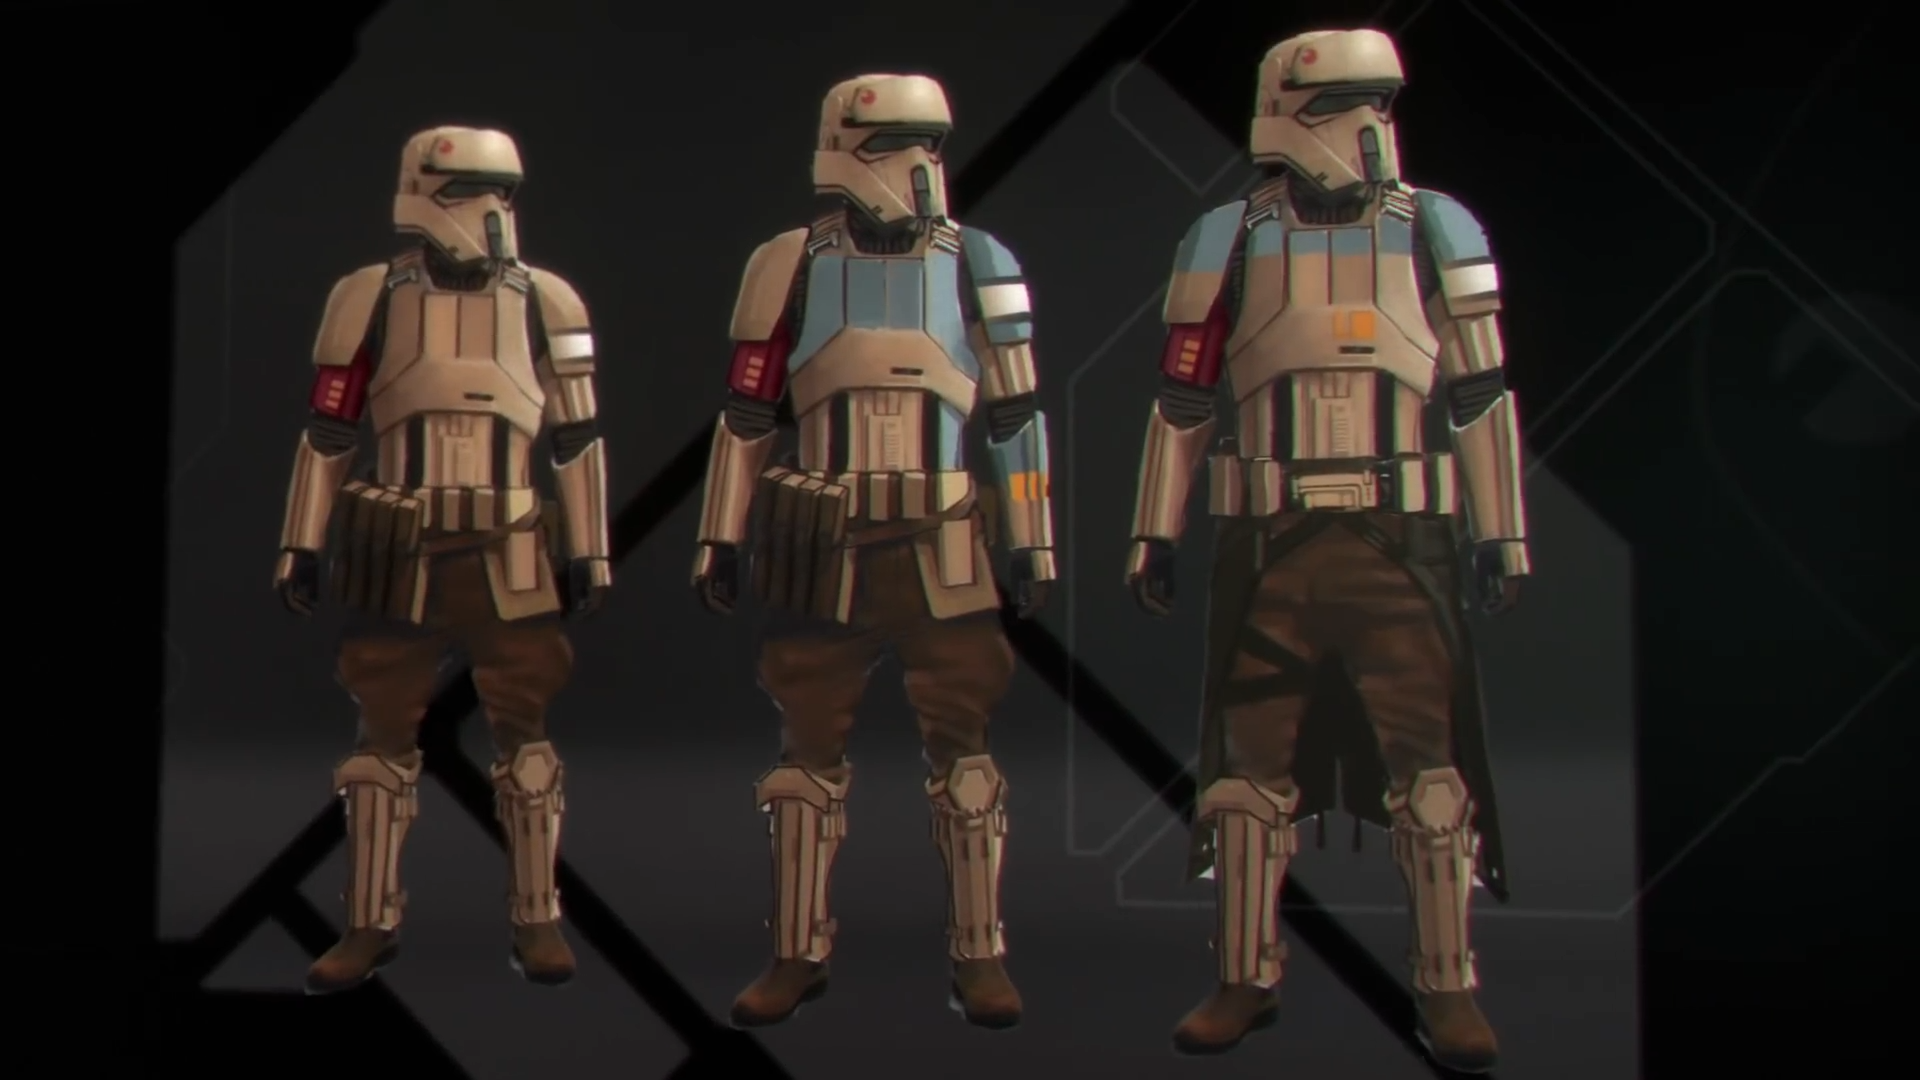 Star Wars: The Evolution of the Stormtrooper